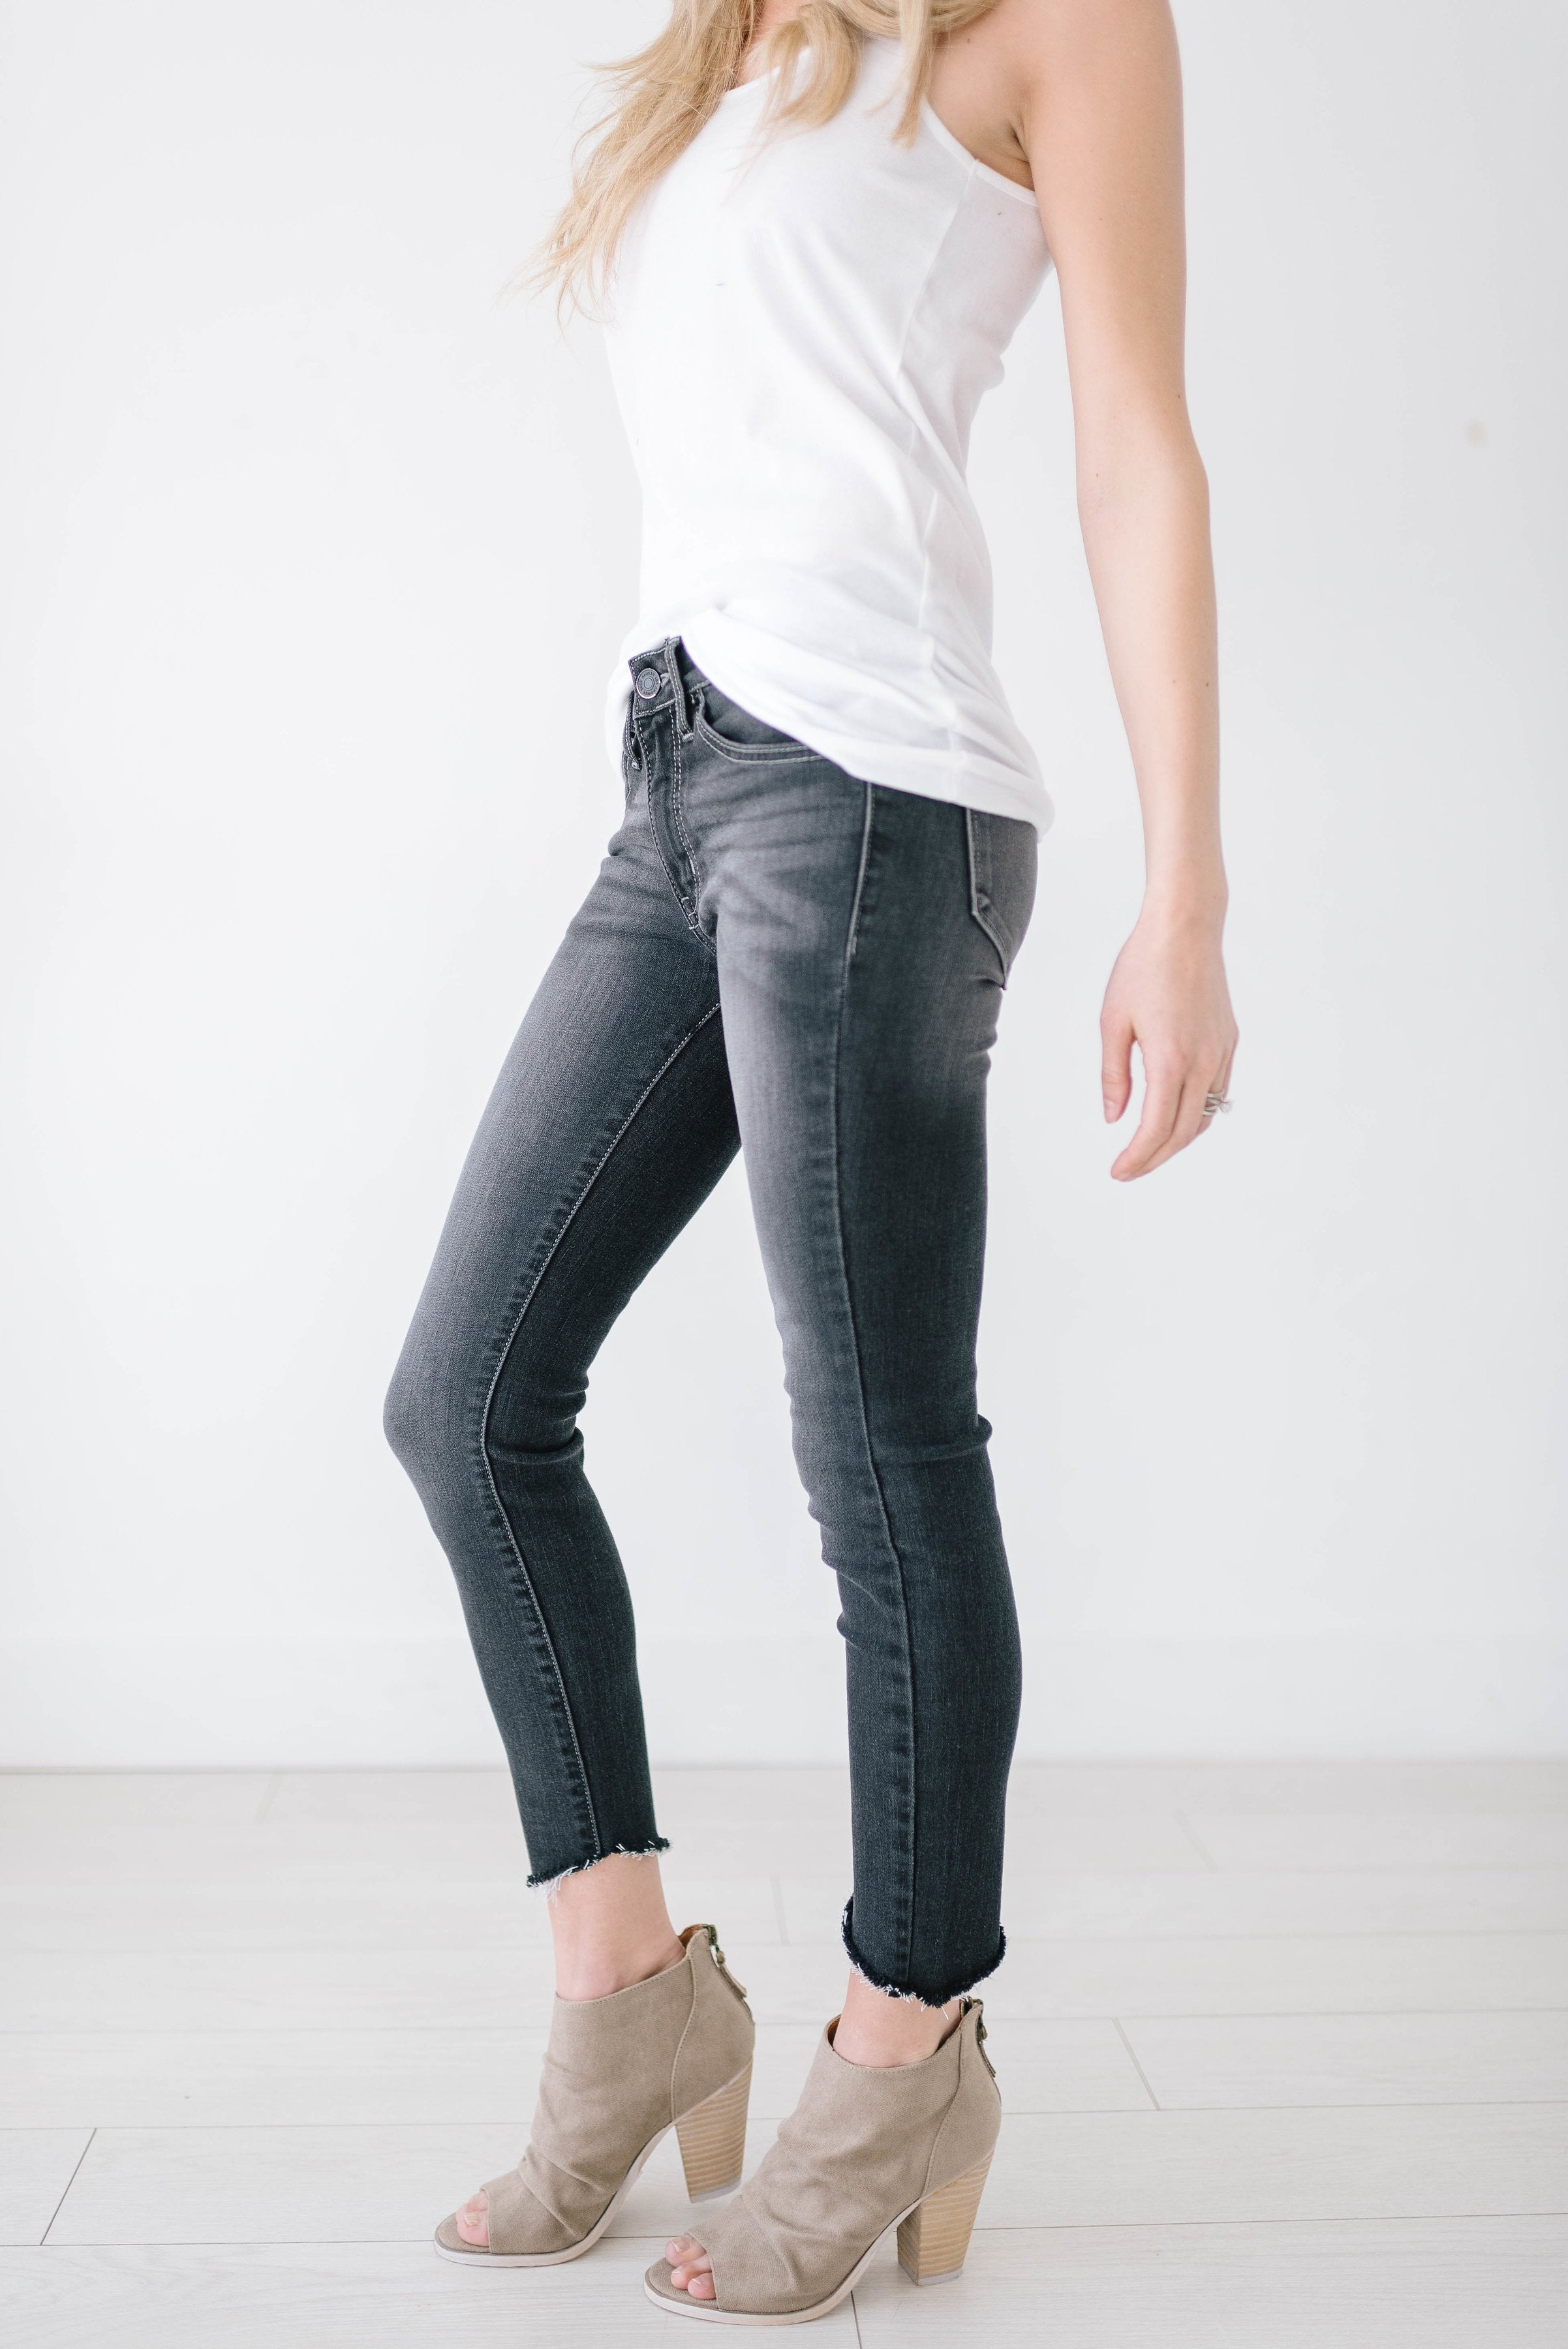 Gray Slanted Skinnies